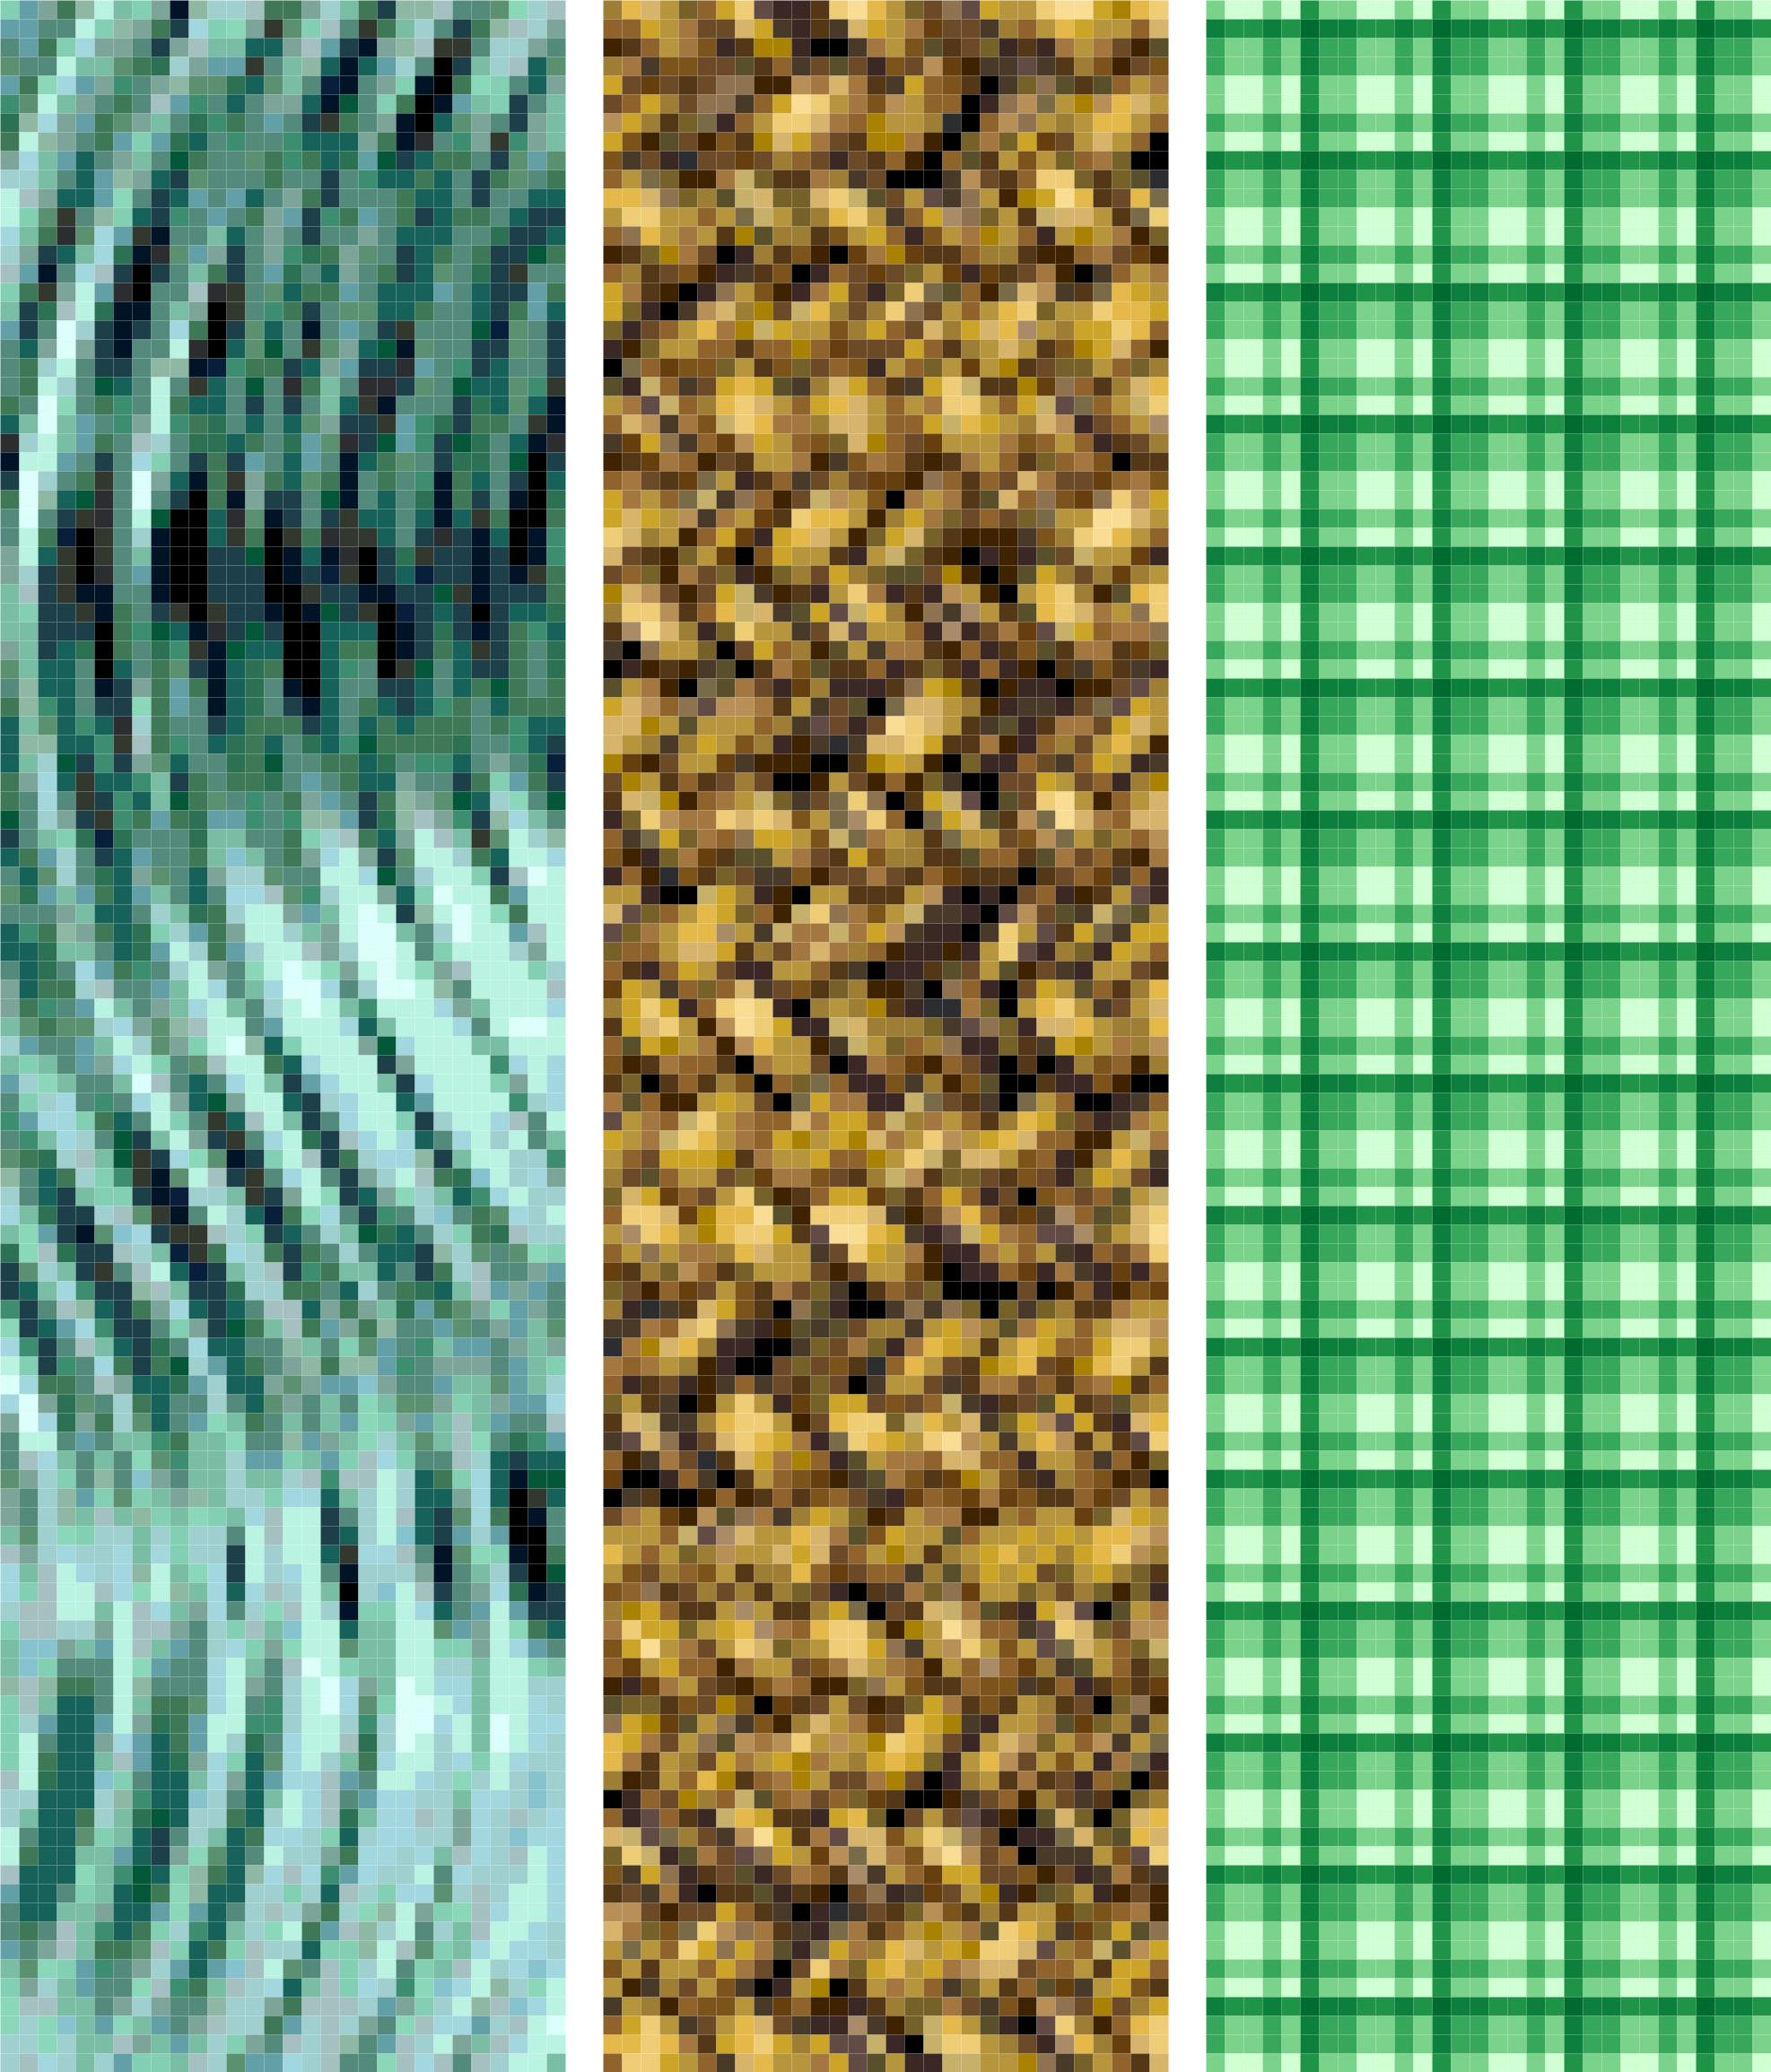 bookmark 14 abstract cross stitch image